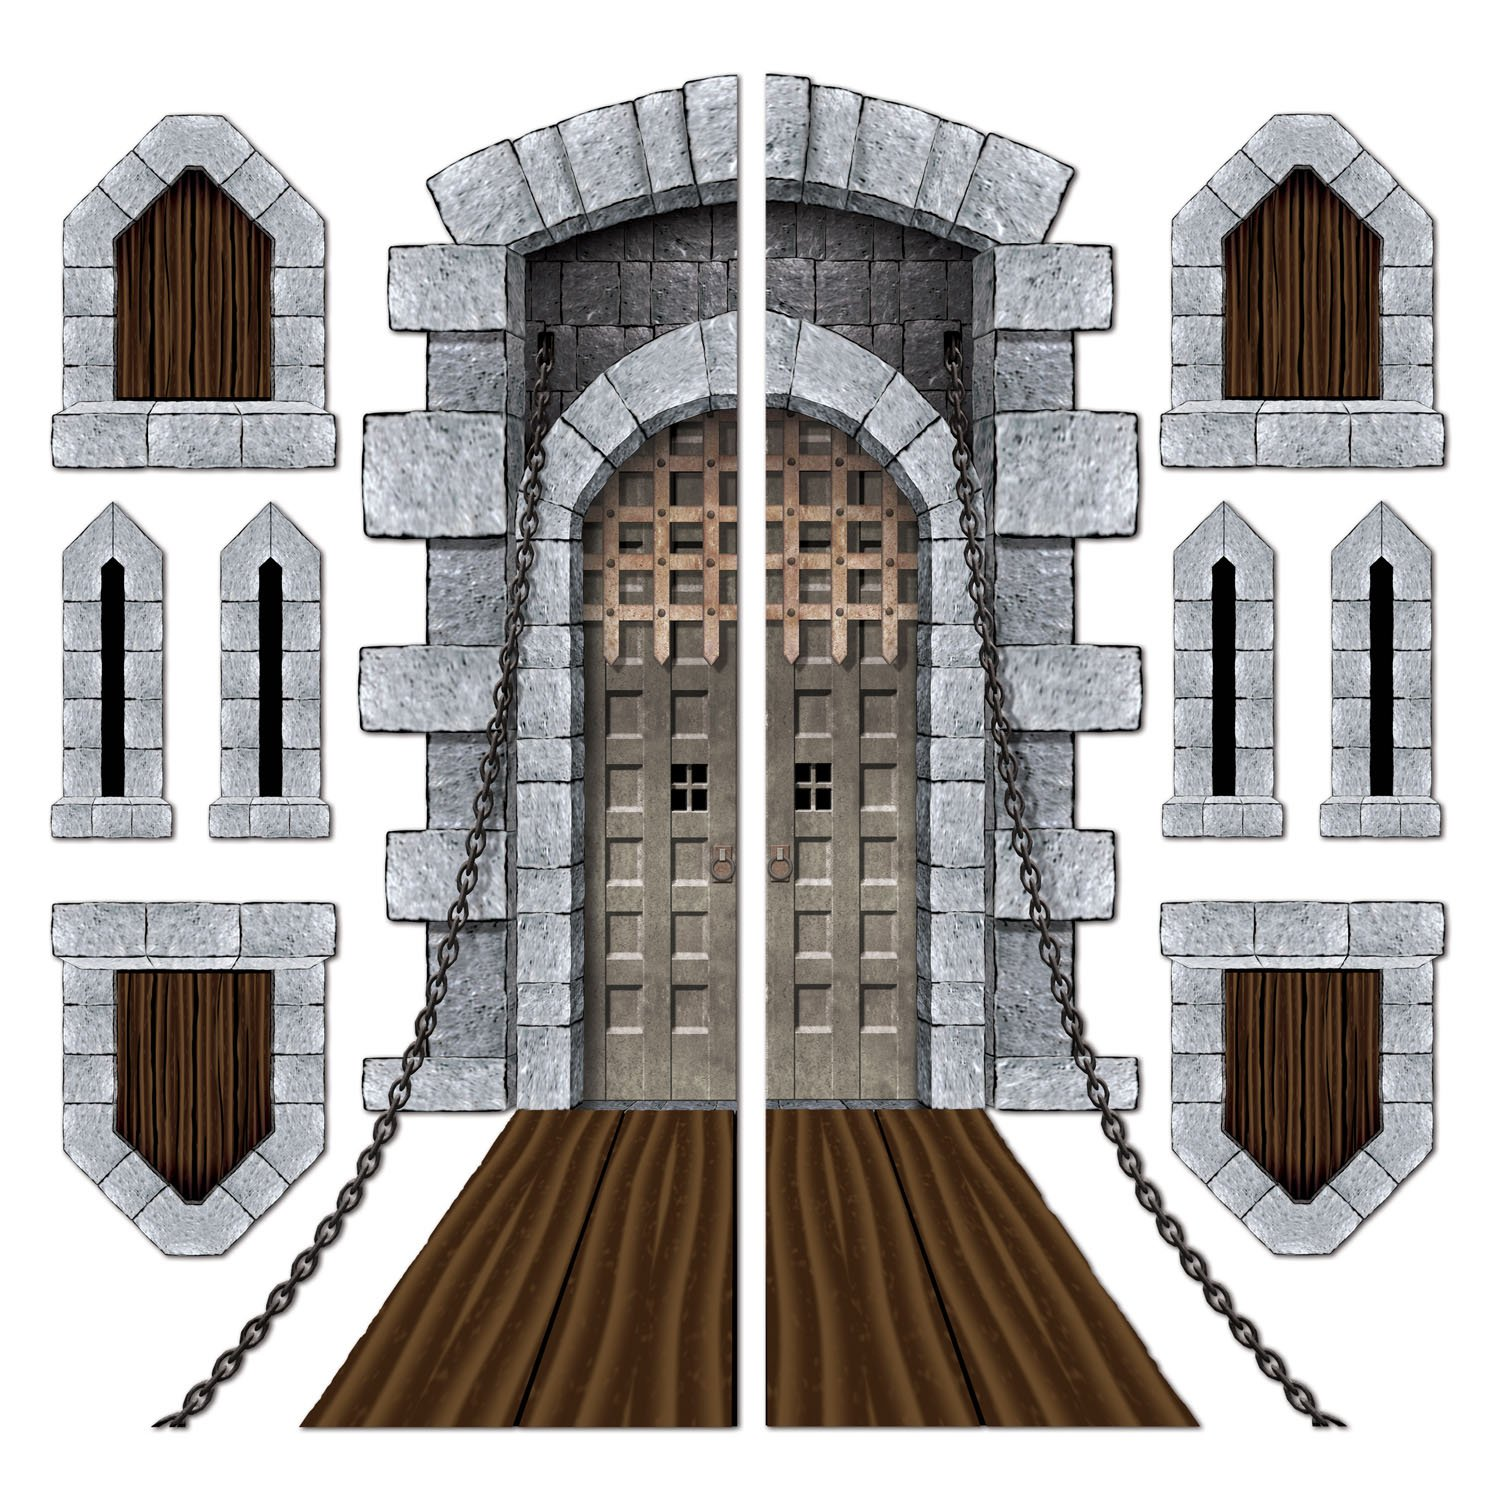 Amazon.com Castle Door \u0026 Window Props Party Accessory (1 count) (9/Pkg) Toys \u0026 Games  sc 1 st  Amazon.com & Amazon.com: Castle Door \u0026 Window Props Party Accessory (1 count) (9 ...